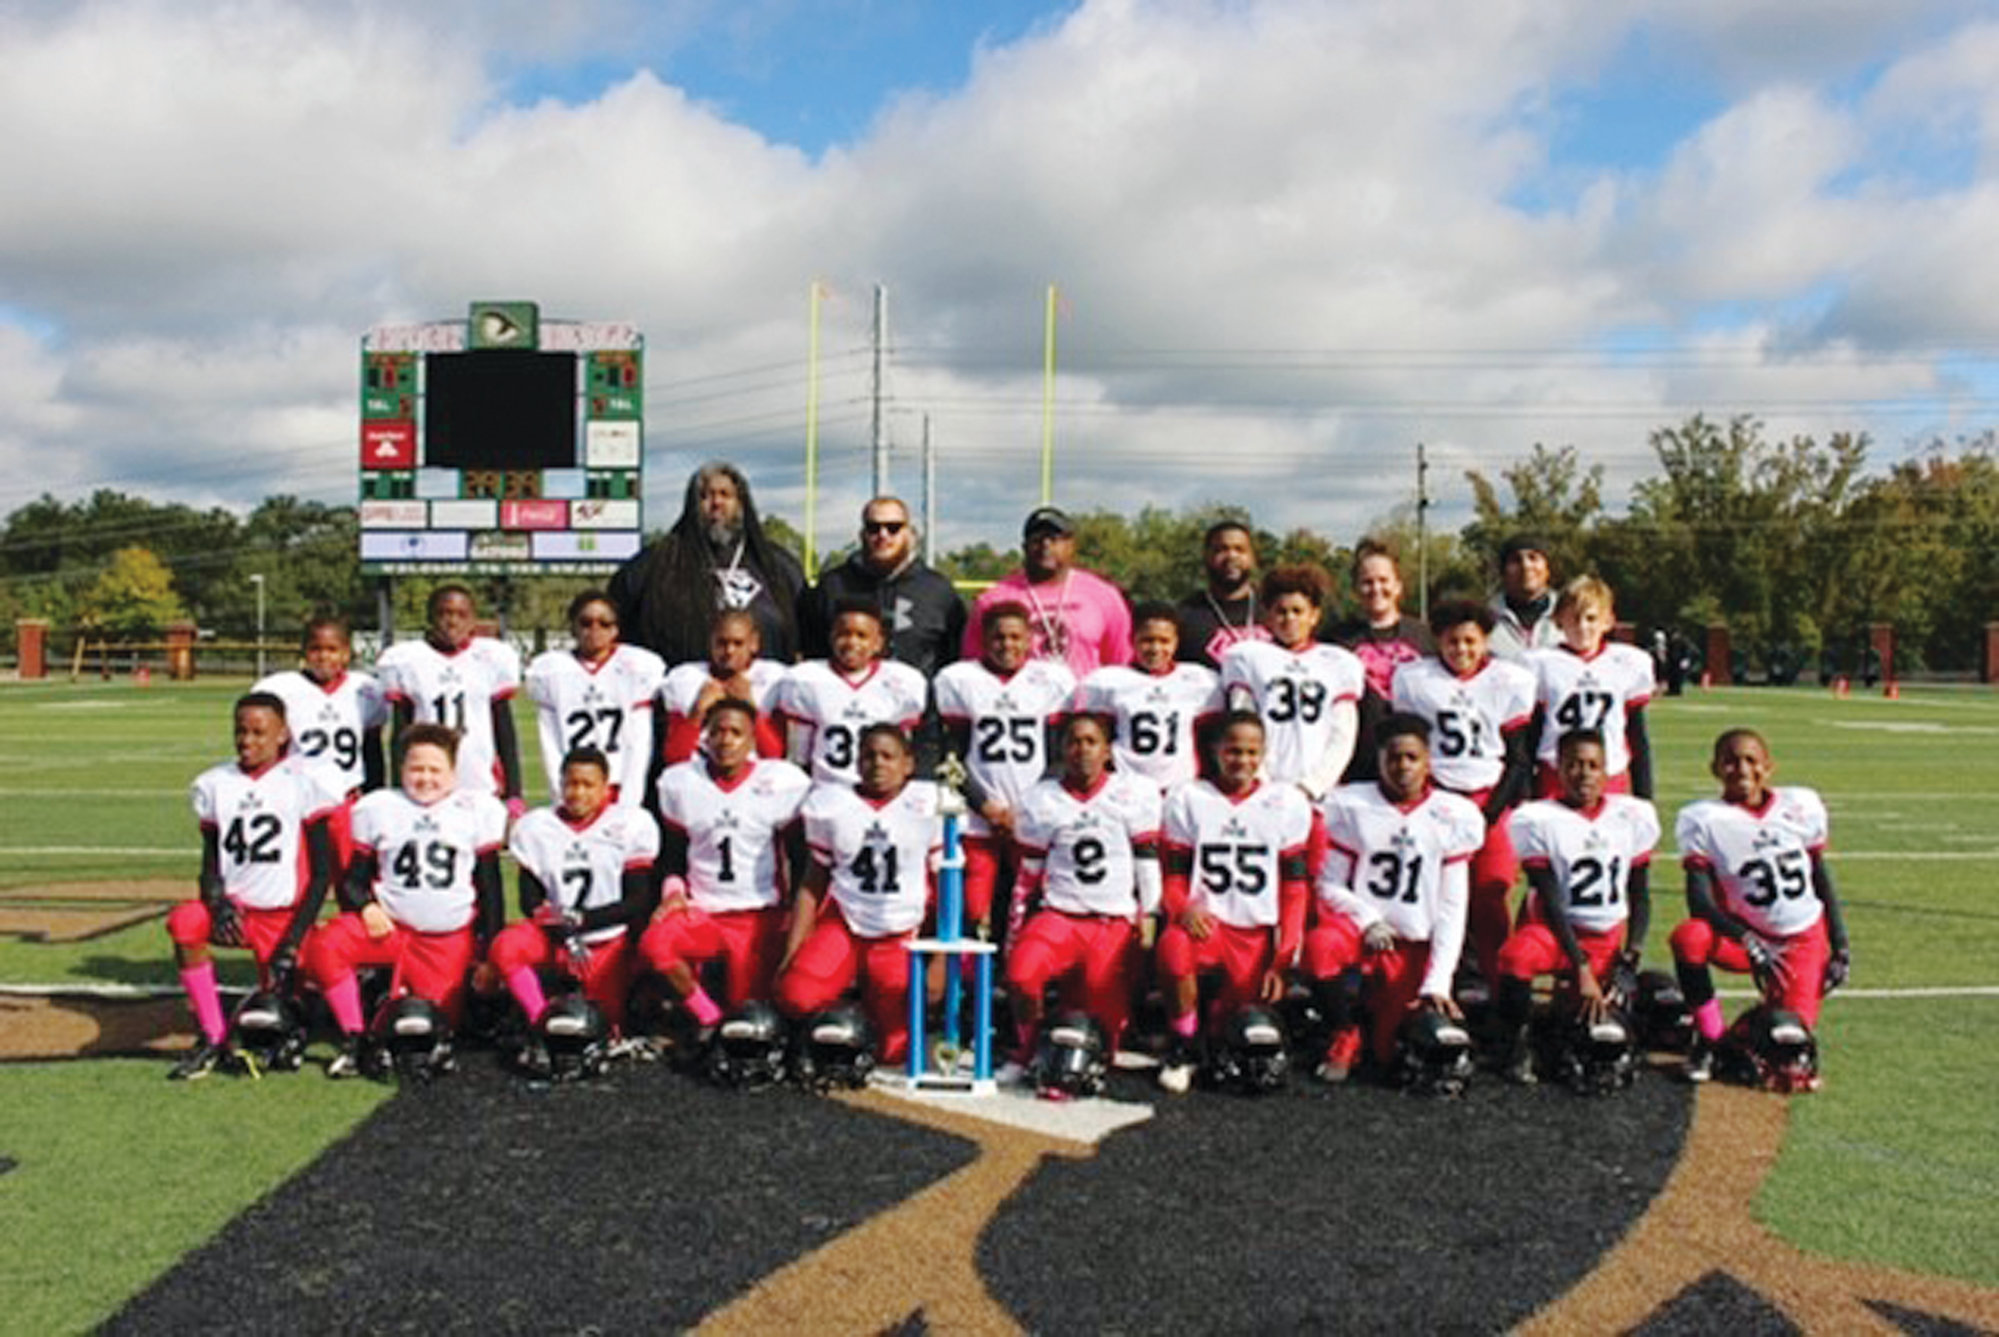 The YAS Spartans Junior Pee Wee Pop Warner football team will be playing in the Mid-South Region championship football game on Nov. 24 in Virginia Beach, Virginia. Members of the team are, first row, left to right: Jamonte Witherspoon, Jaden Tillman, Ladarius Jenkins, Jamirh Bey, Javonte Brown, Traveze Benefield, Donte Boykin, Donavon Isaac, Tyleek Dennis and Justiss Parker-Jones. Second row: Christian Green, W'dar Williams, Dontrell Isaac, Joshua Smith, Bryce Allen, Phernete Workman, Kyson Rigby, Romania Myers, Jordan Tillman andCamdyn Strickler. Third row: Assistant coach Dwayne Crim, assistant coach Mason Rigby, president Ivan Sanders, head coach Anwond Boykin, team mom Nikki Tillman and assistant coach Ricky Ceballos.